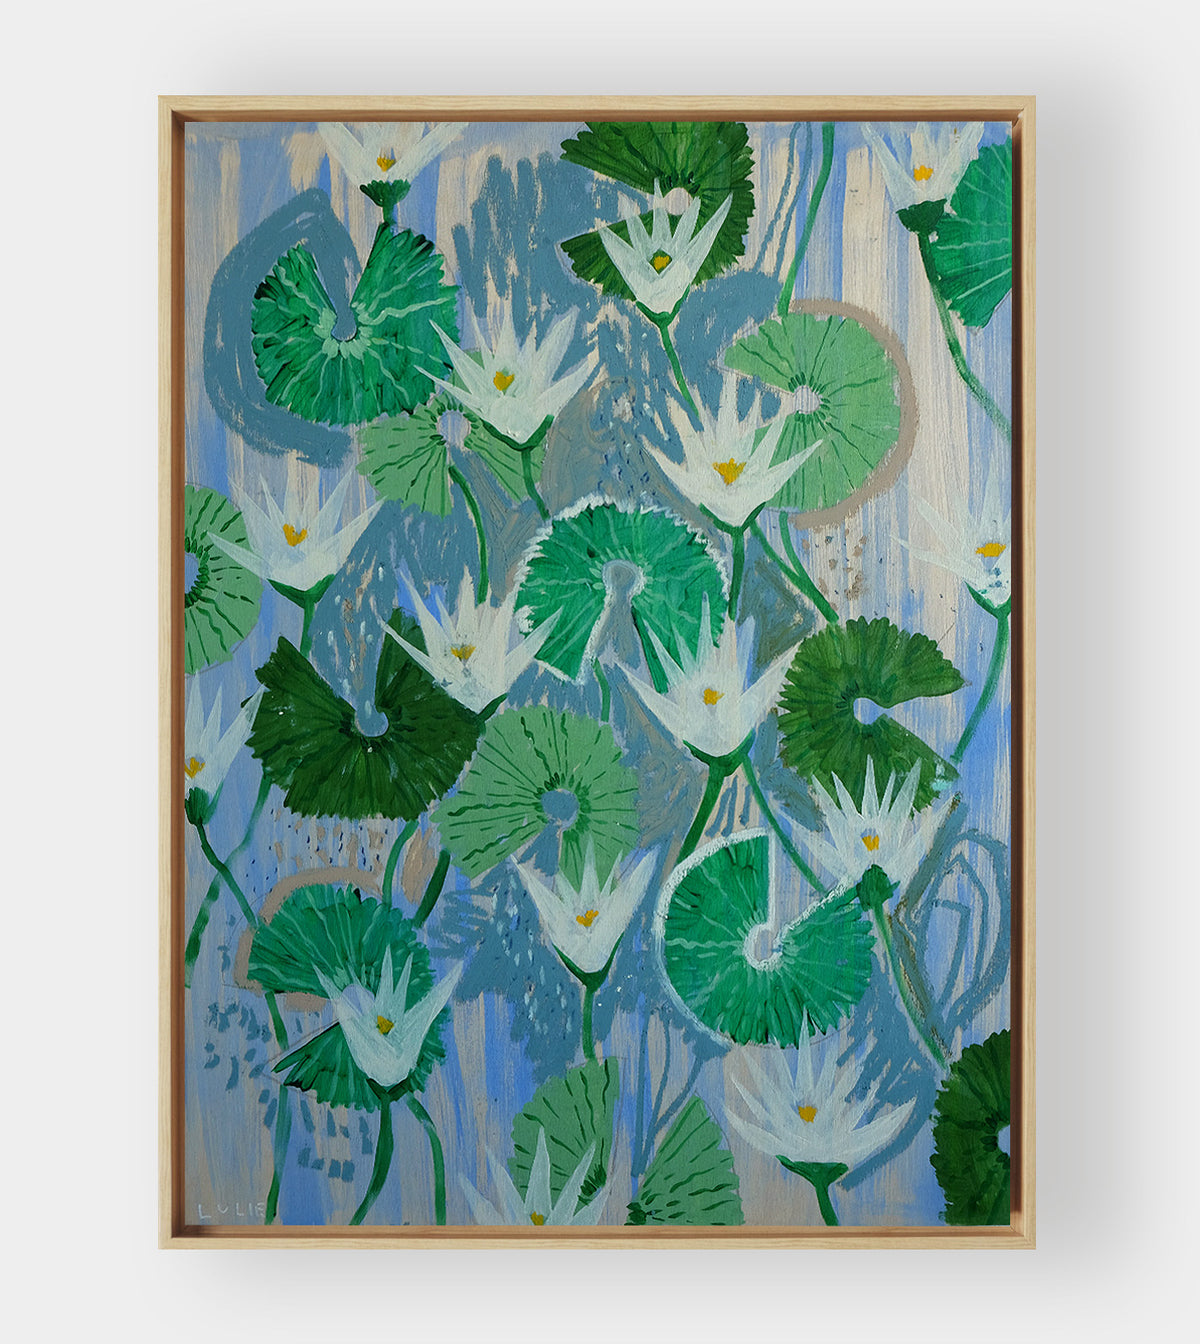 Aquatic Plant No. 13 - 36 x 48